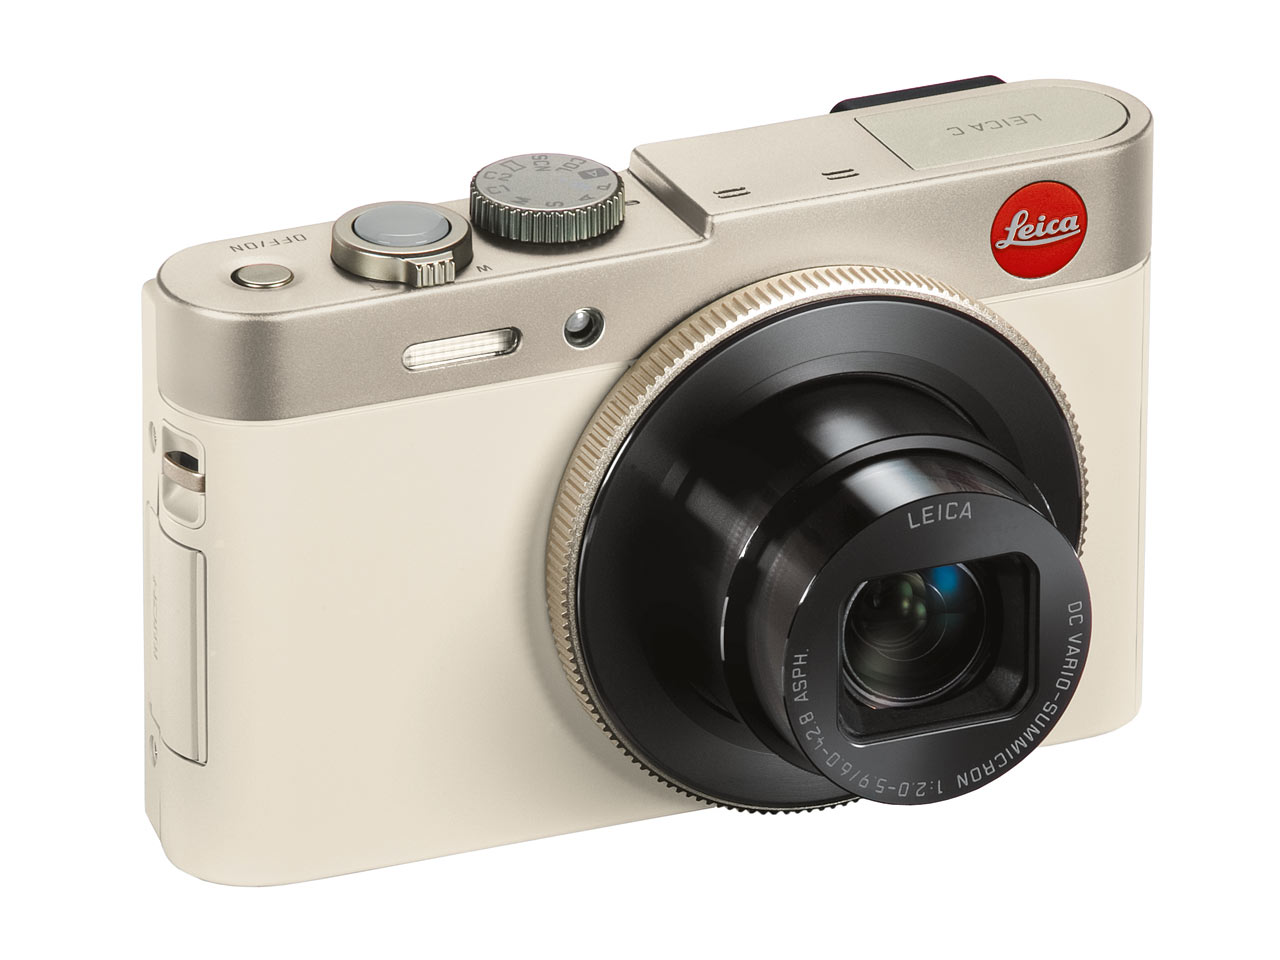 Now you \'C\' it: the Leica C enthusiast compact with built-in EVF ...